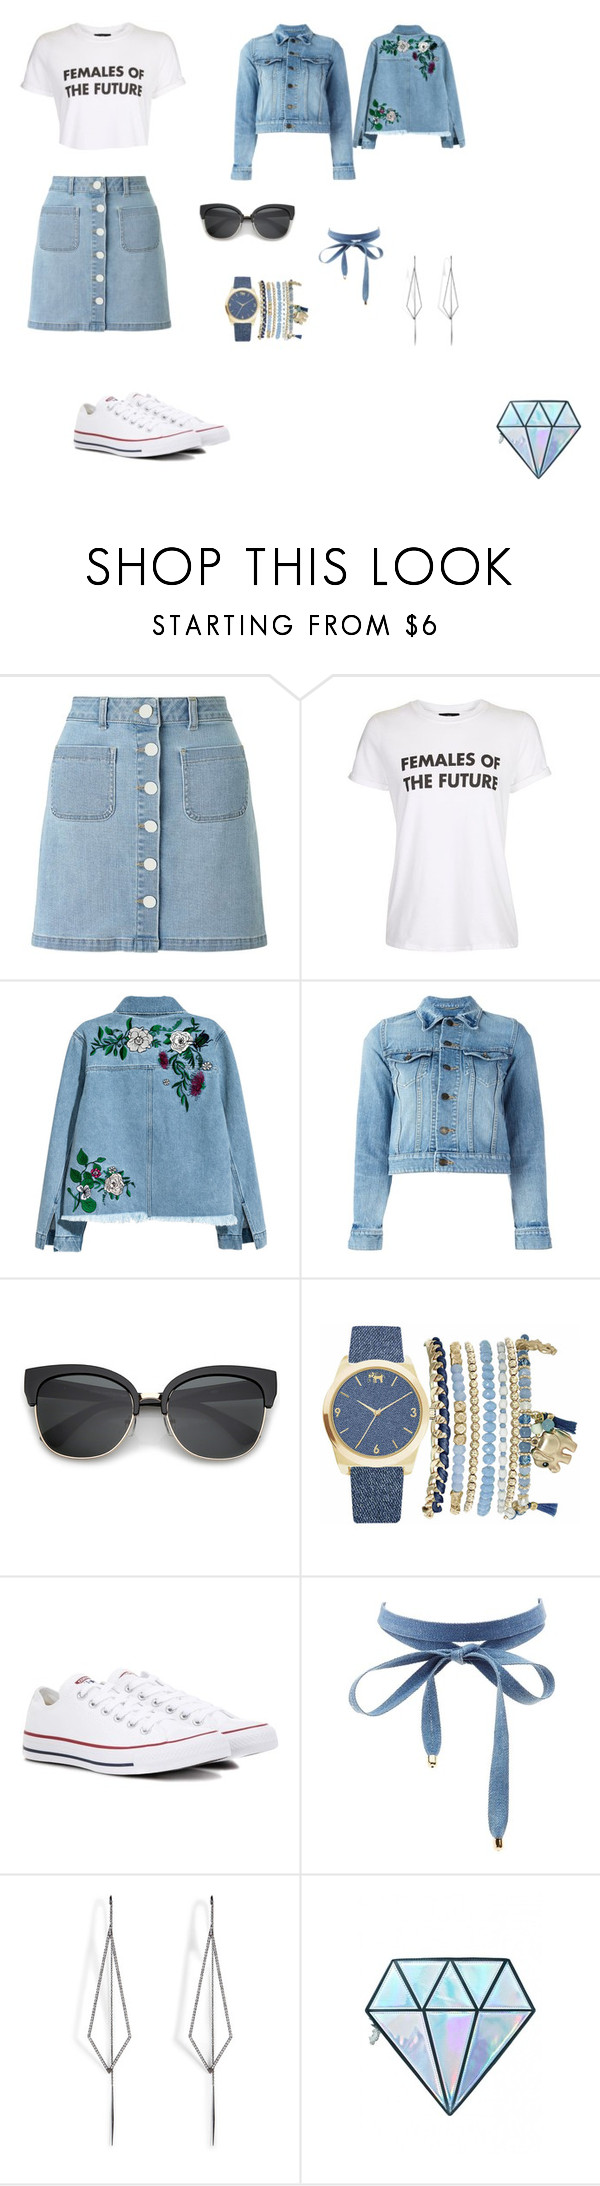 Ropa RopaOutfits Y TeenOotd Pinterest Daily Casuales Linda 5RA4jL